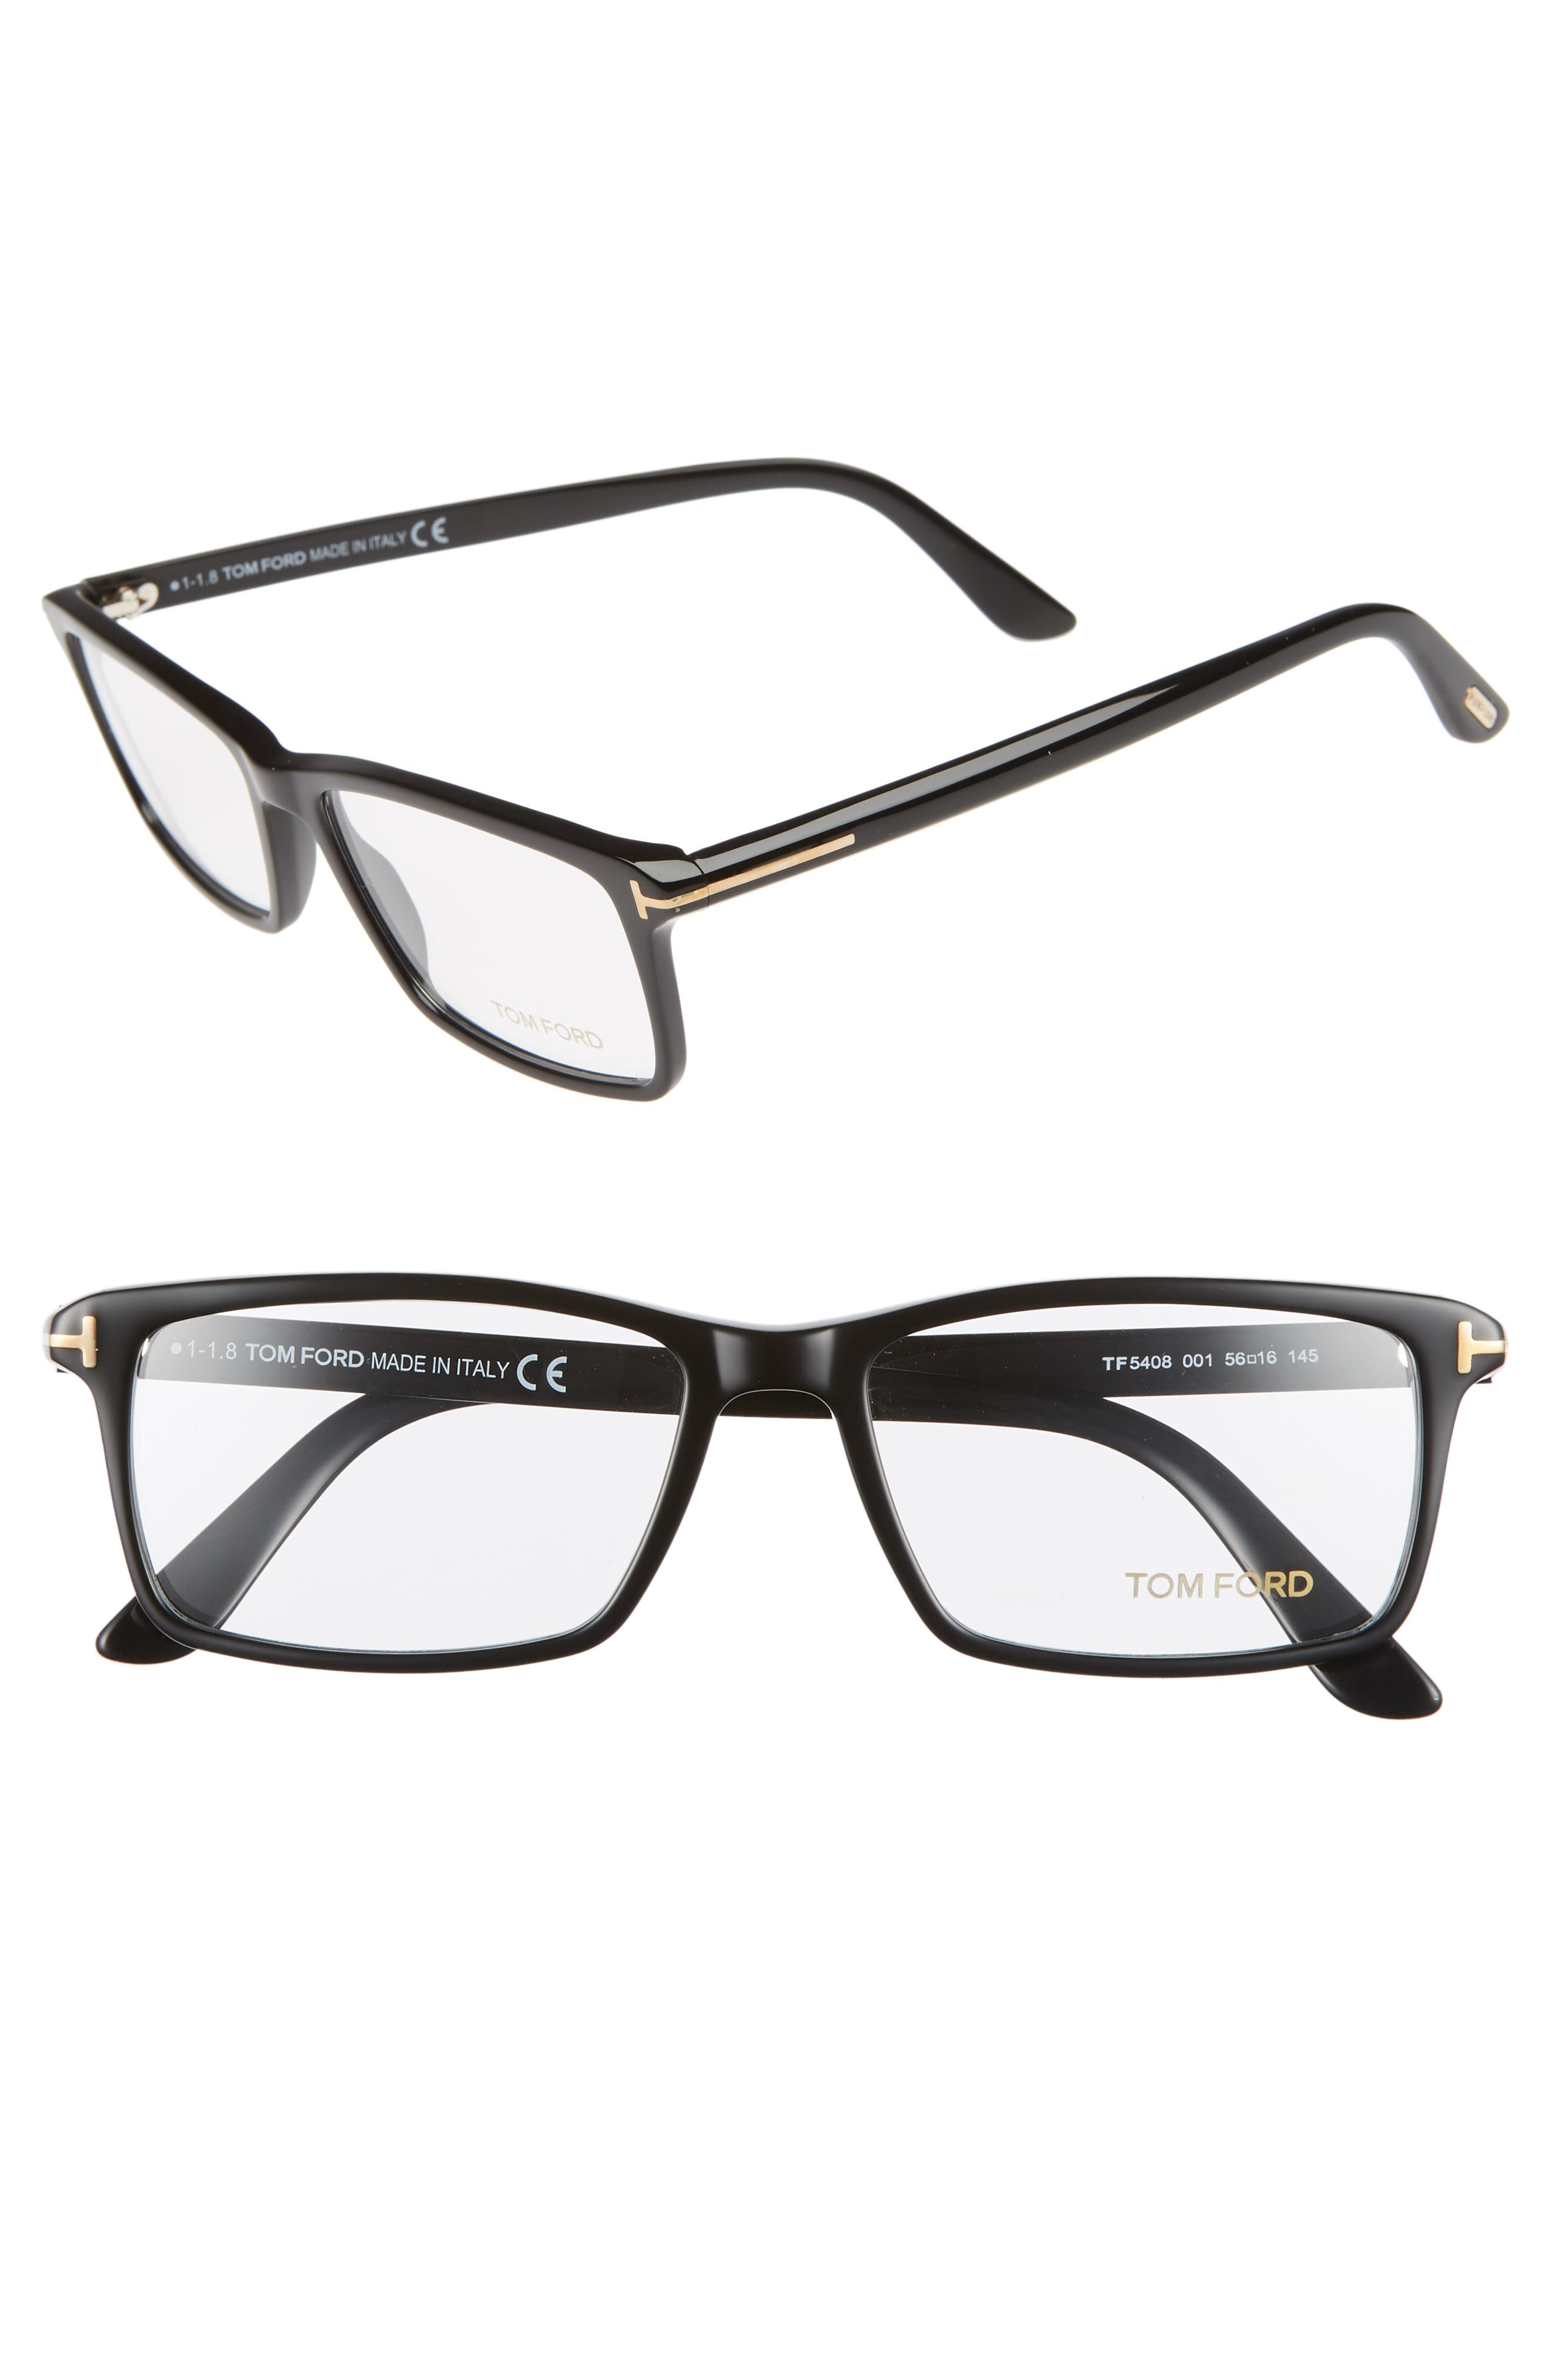 56mm Rectangle Optical Glasses,                         Main,                         color, SHINY BLACK/ SHINY ROSE GOLD